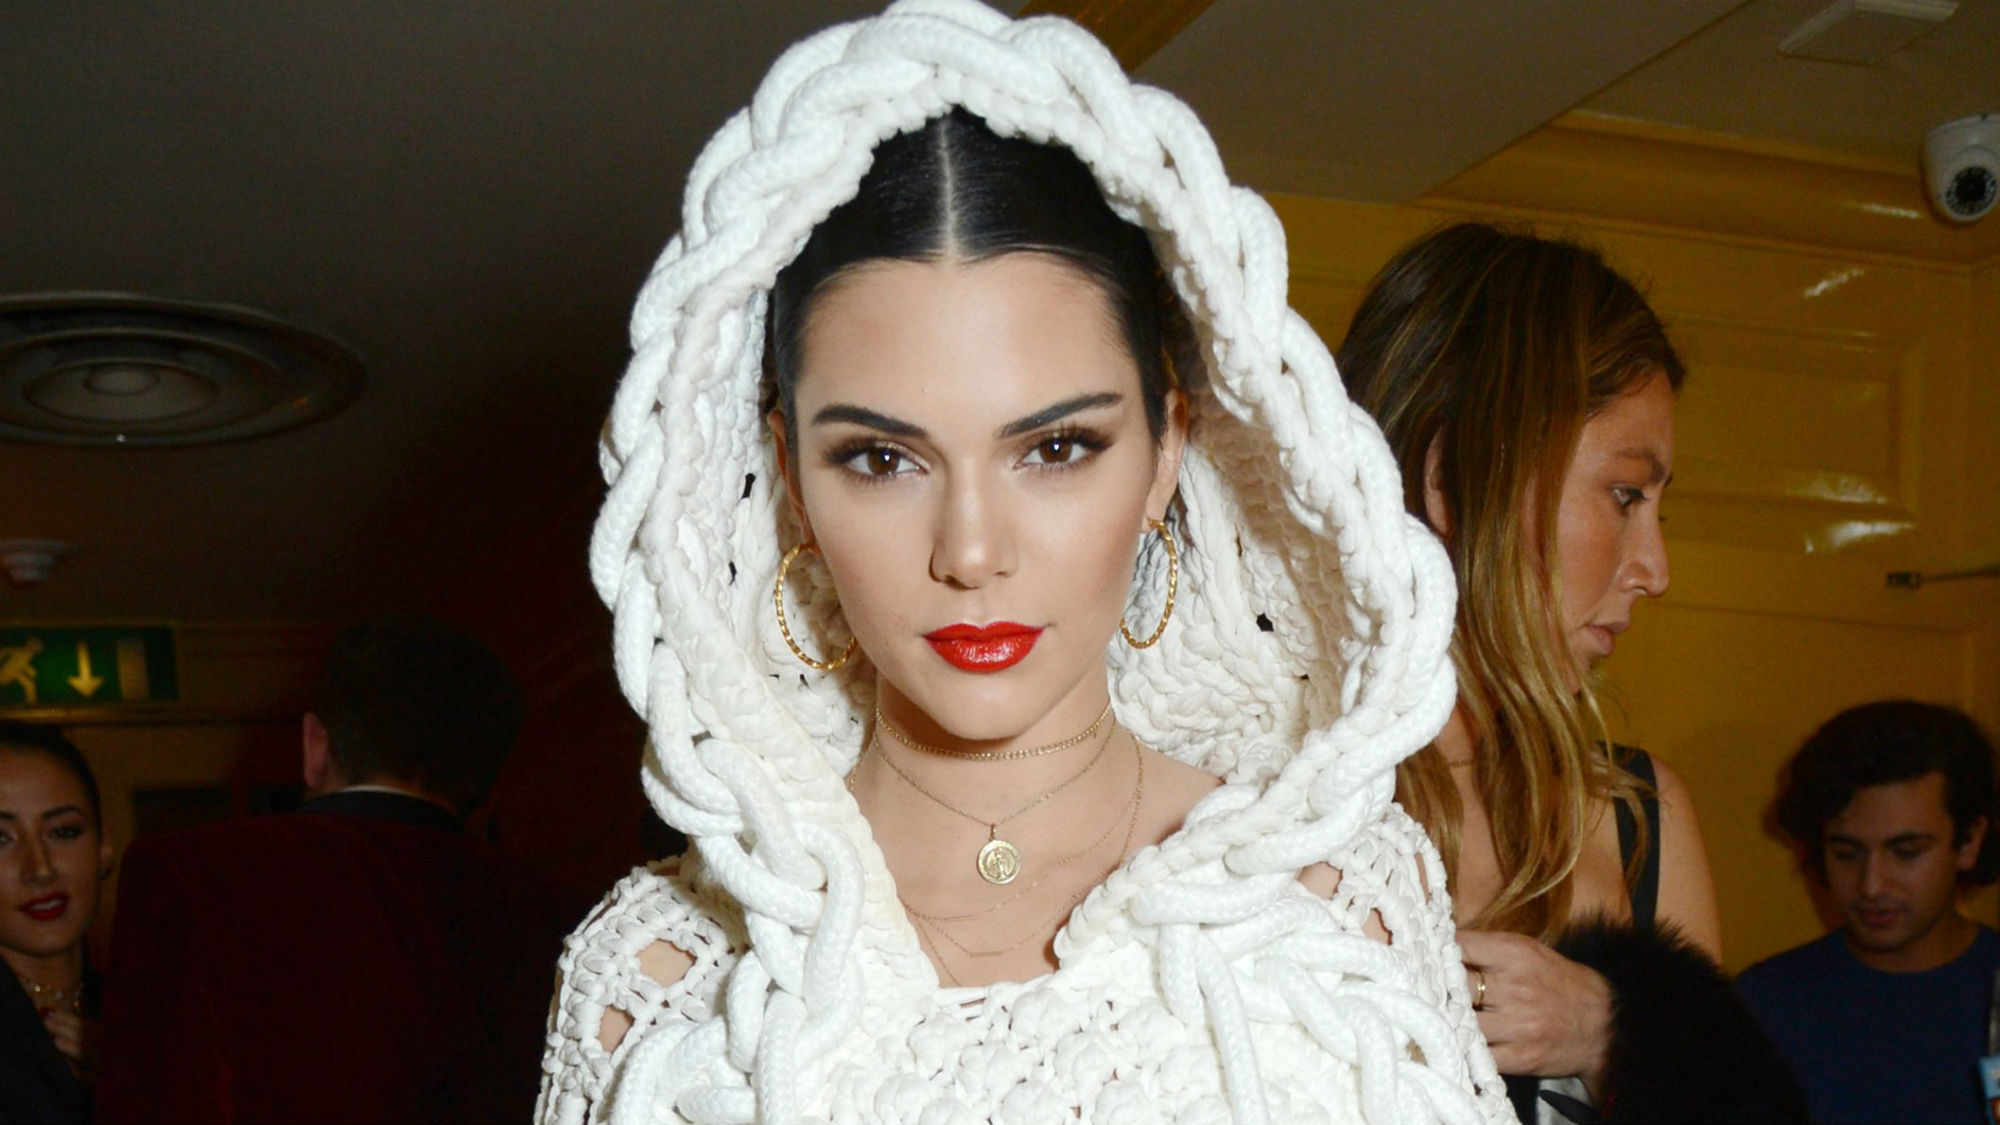 Kendall Jenner just made a very emotional statement about her 'debilitating' acne